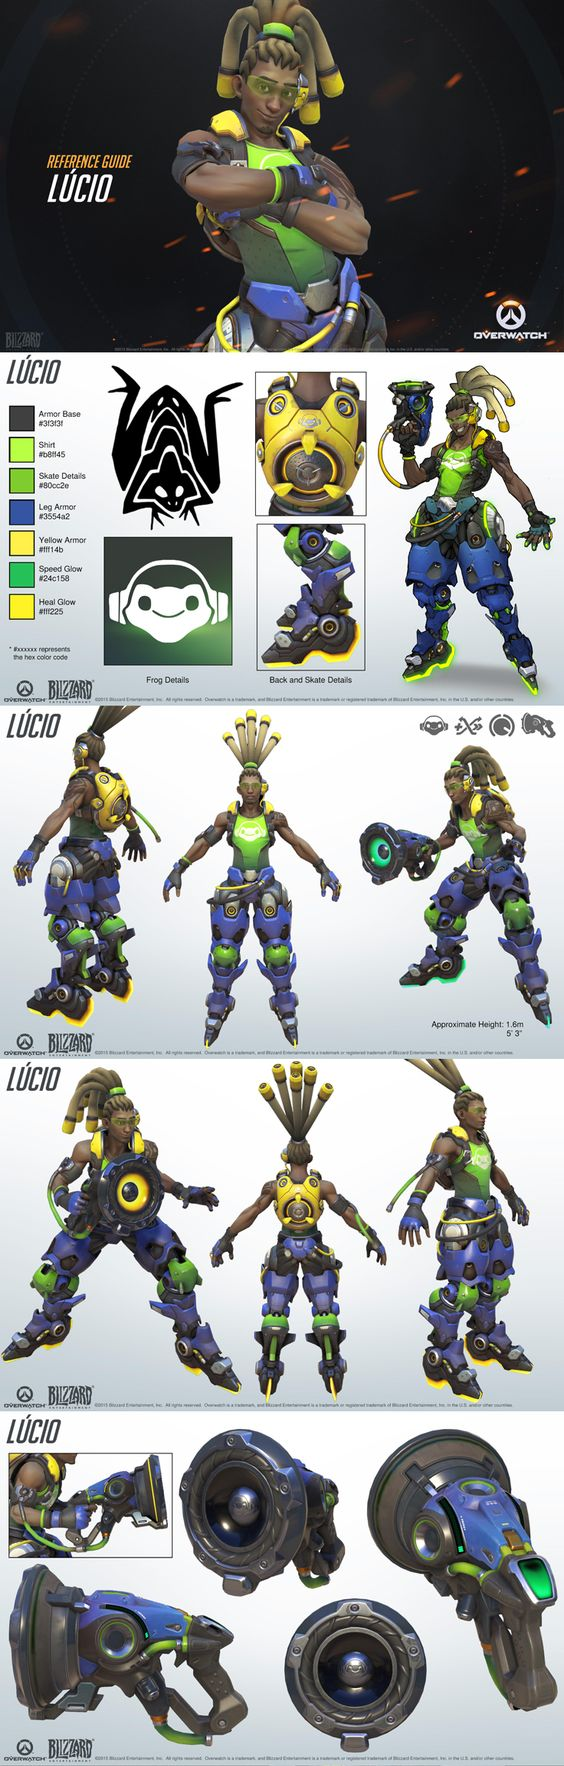 Character Design Chart : Lucio reference guide overwatch pinterest design